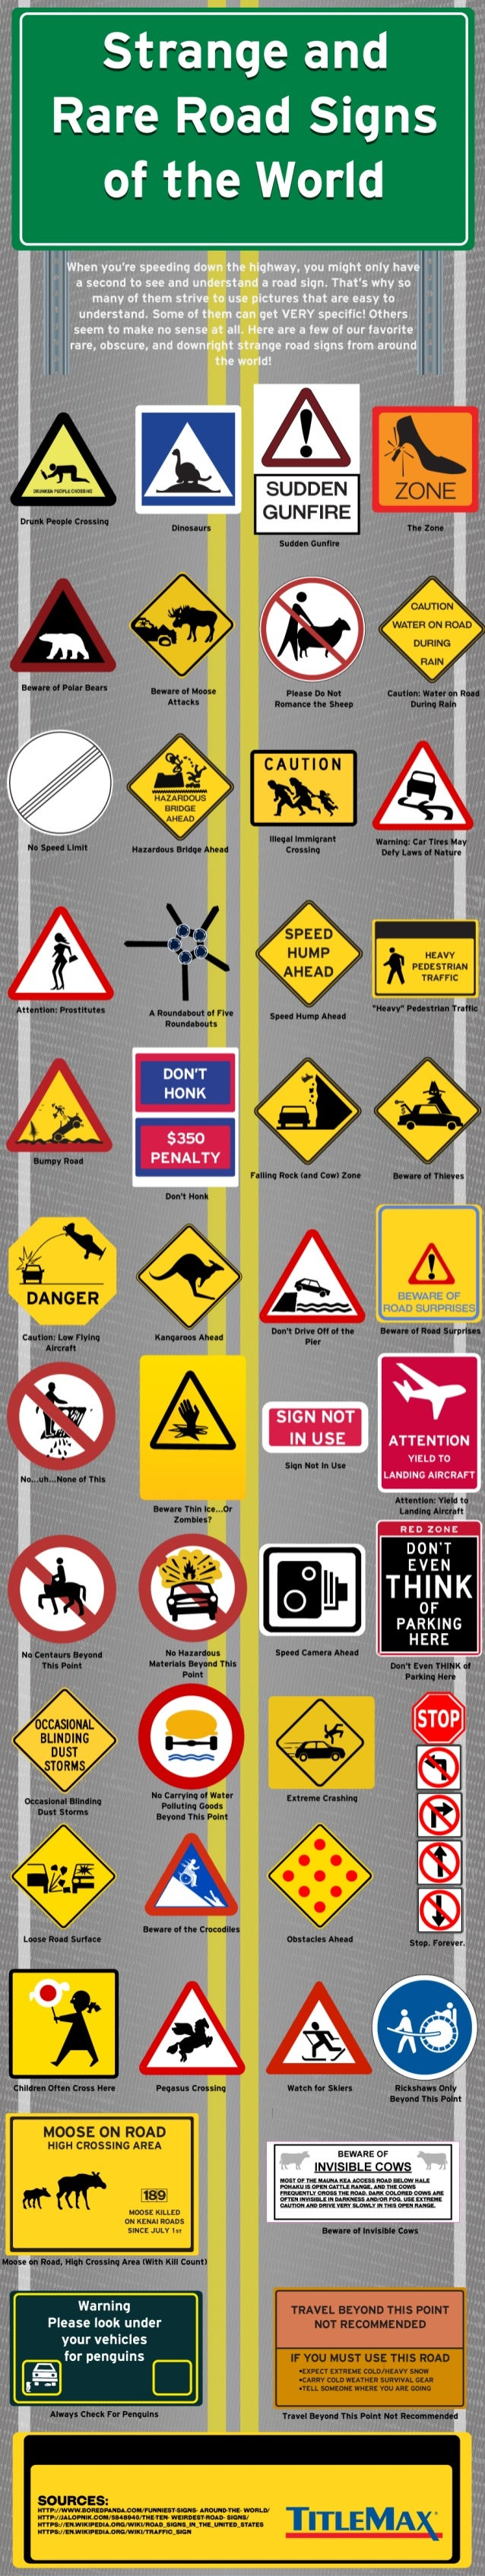 Strange And Rare Road Signs Of The World. Dishwasher Signs. Pallor Signs Of Stroke. Hurt Signs. Knuckles Signs. Towel Signs Of Stroke. Attacks Signs Of Stroke. Small Vessel Signs Of Stroke. Lpg Signs Of Stroke